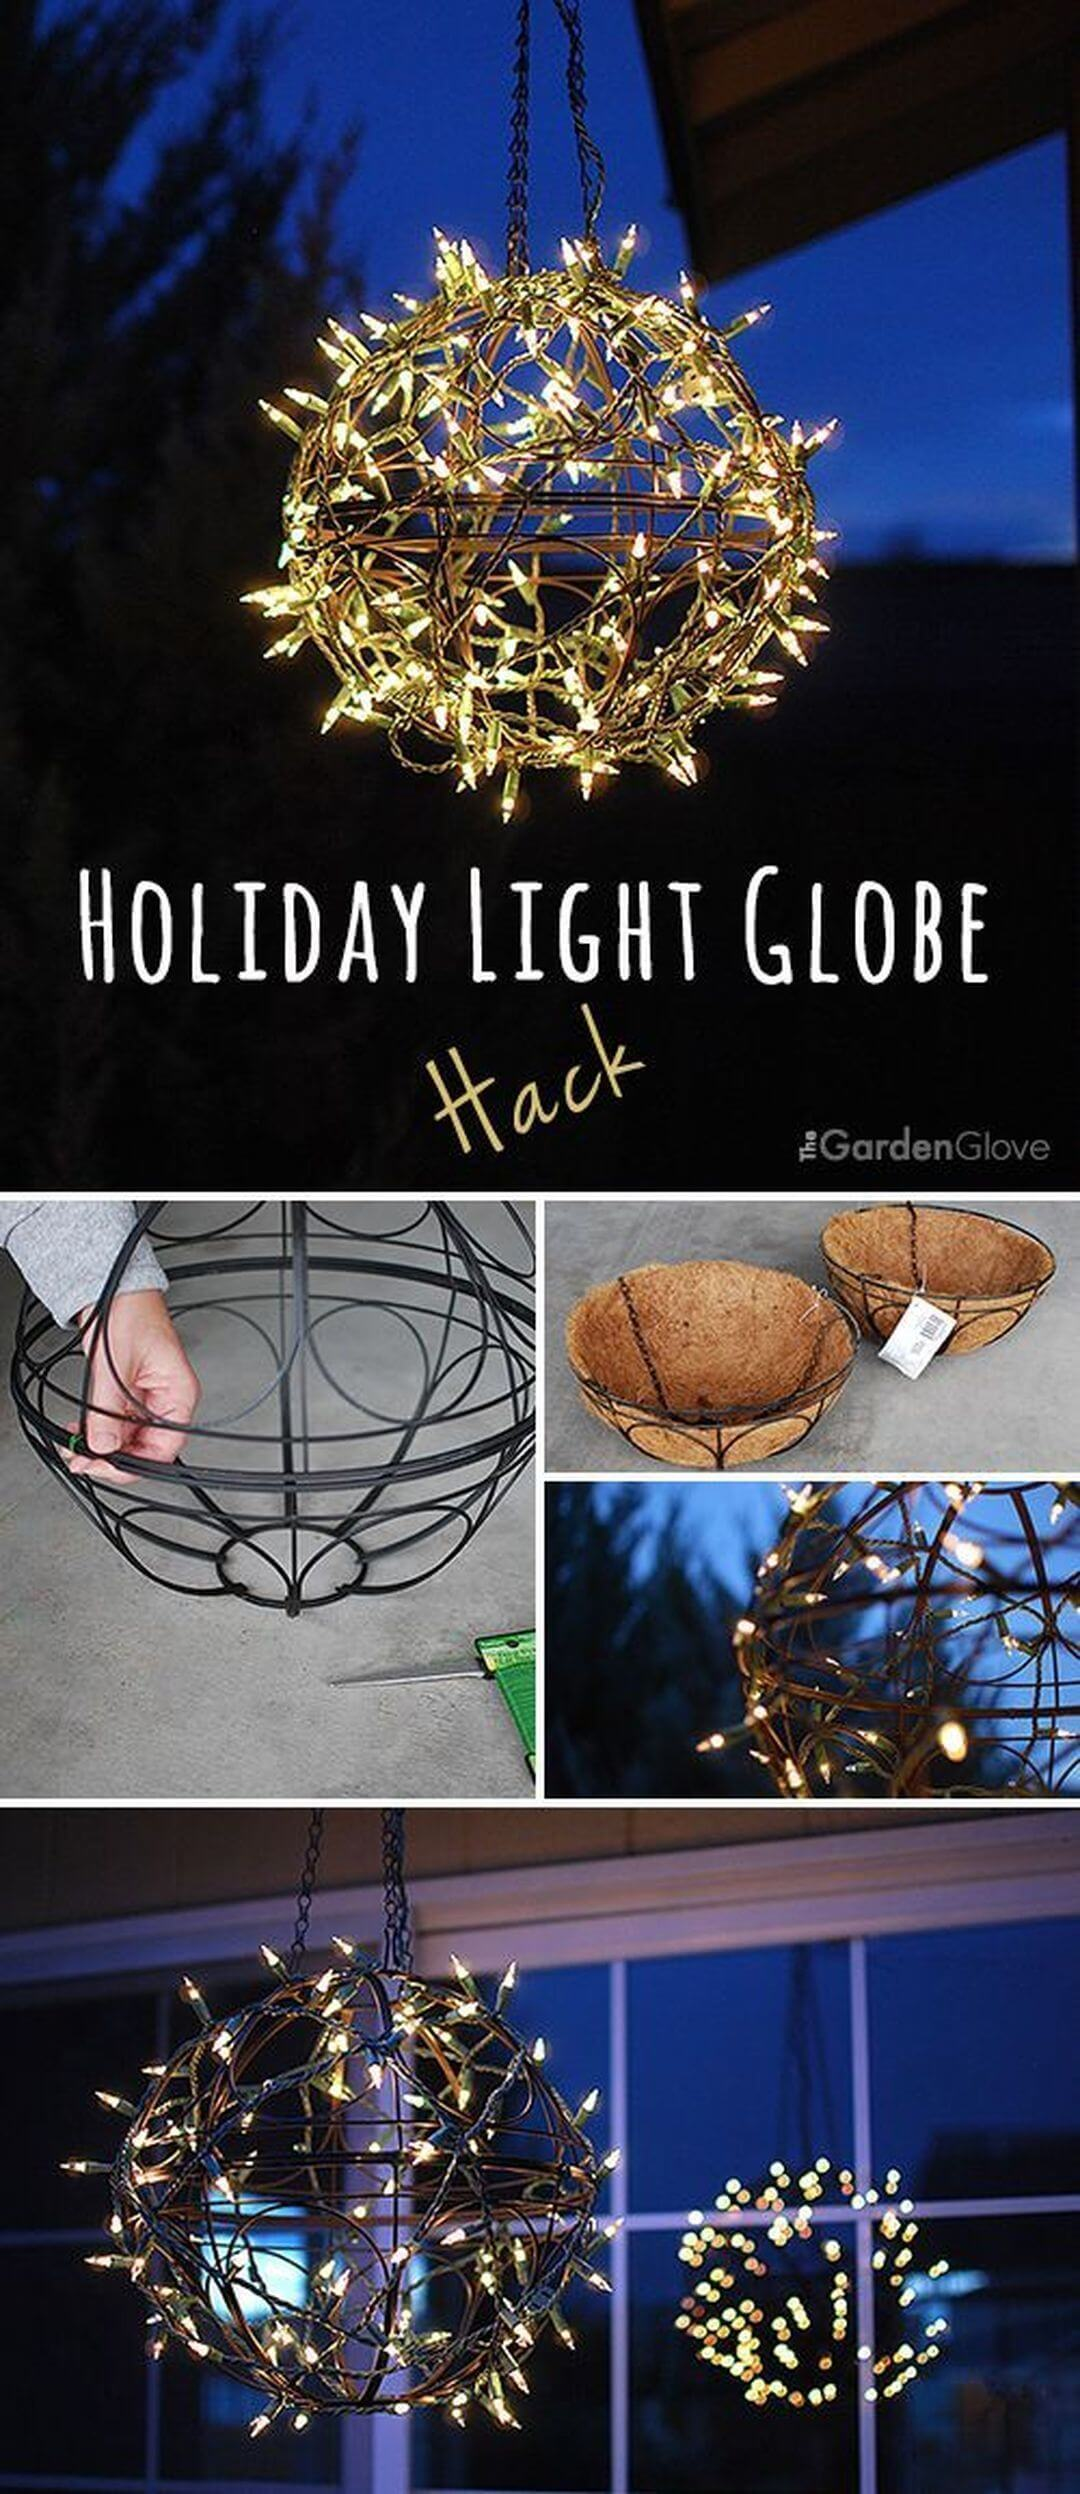 Use Planters to Make an Outdoor Light